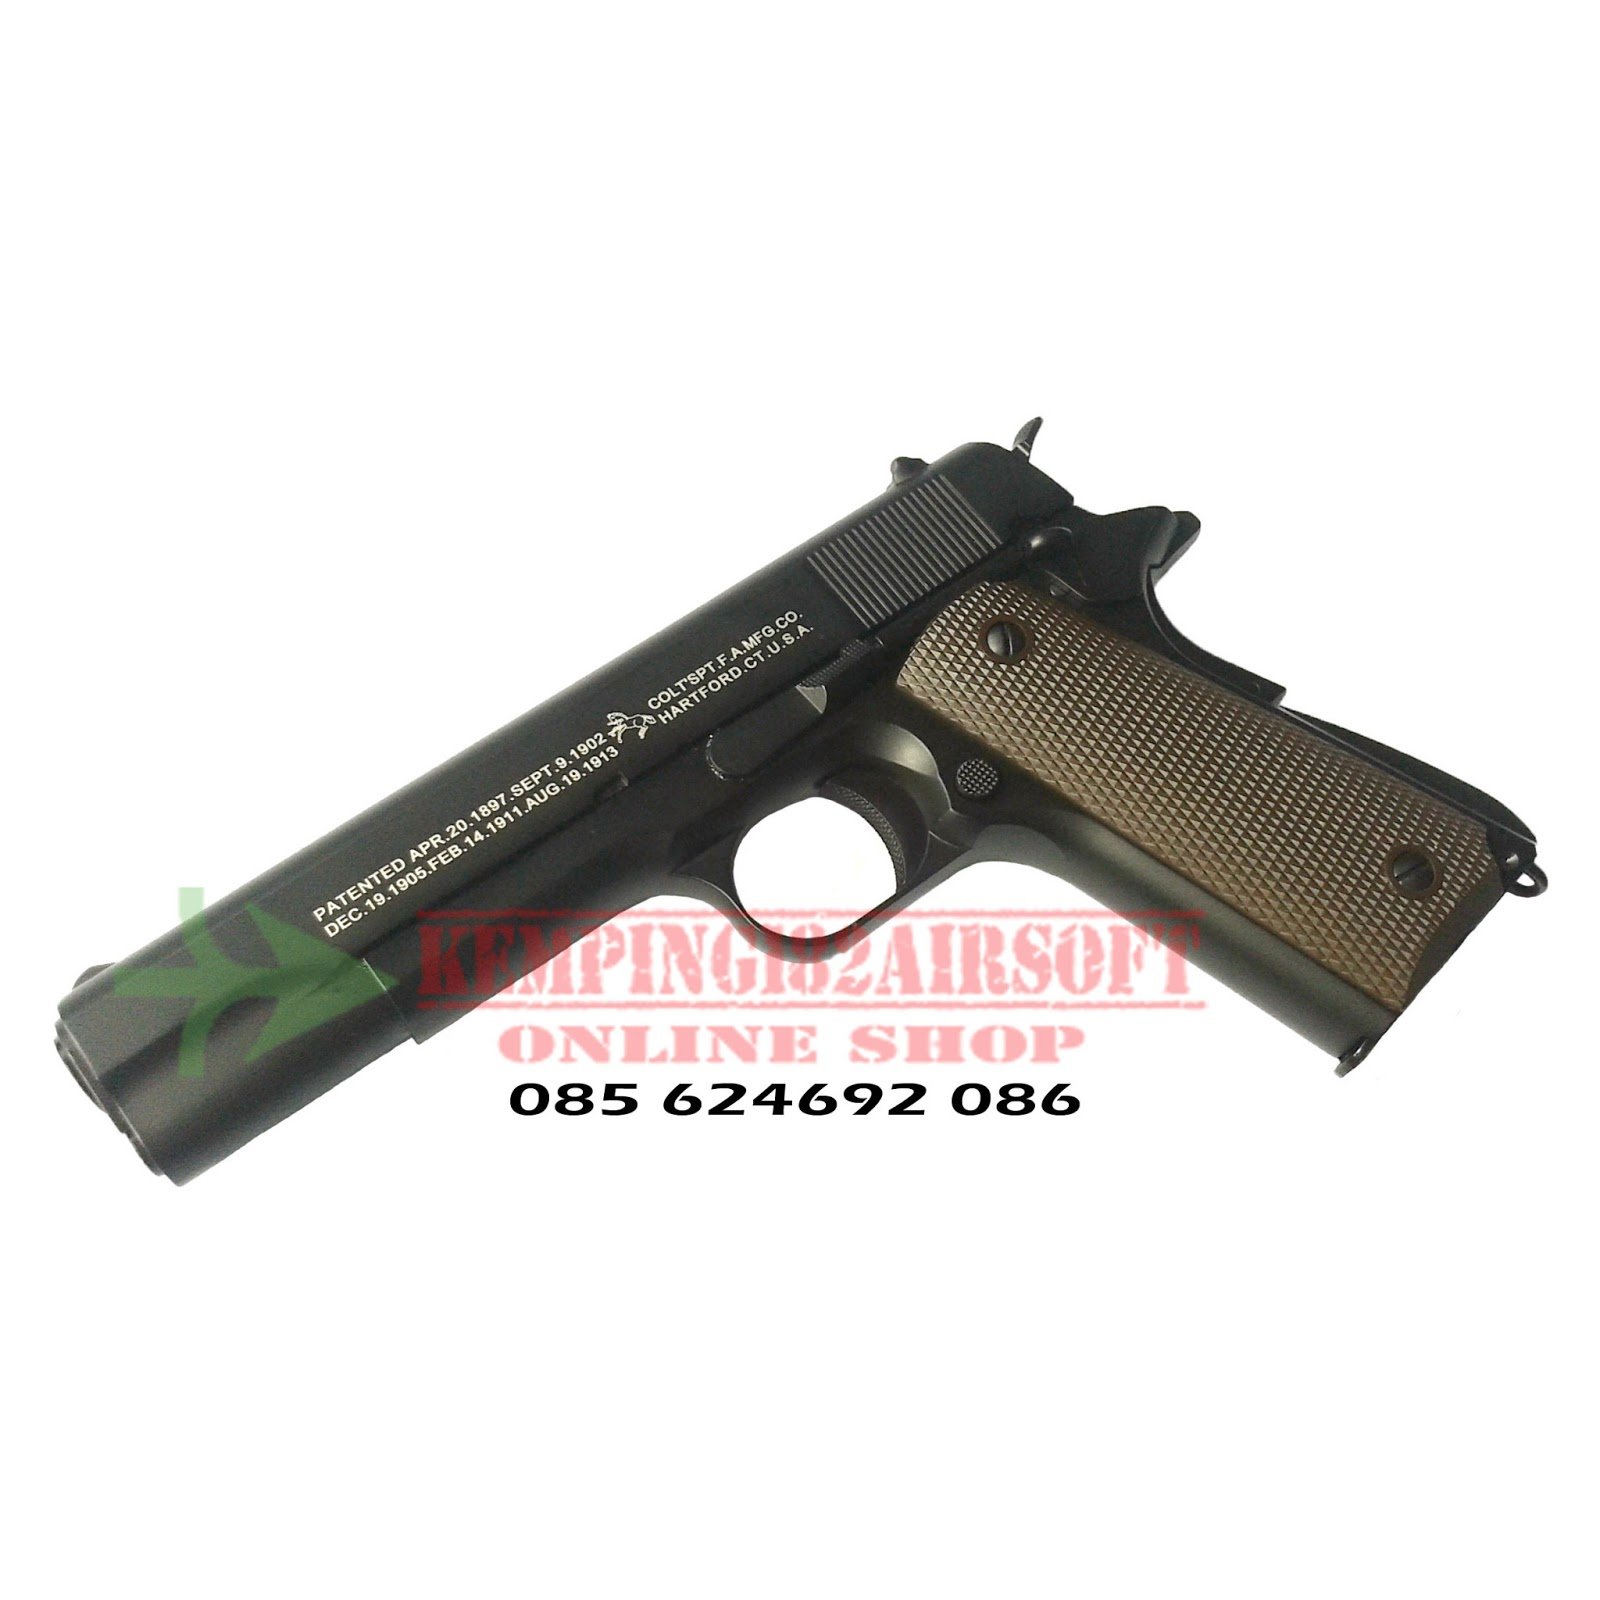 comment on this picture satpam air soft gun jam dinding